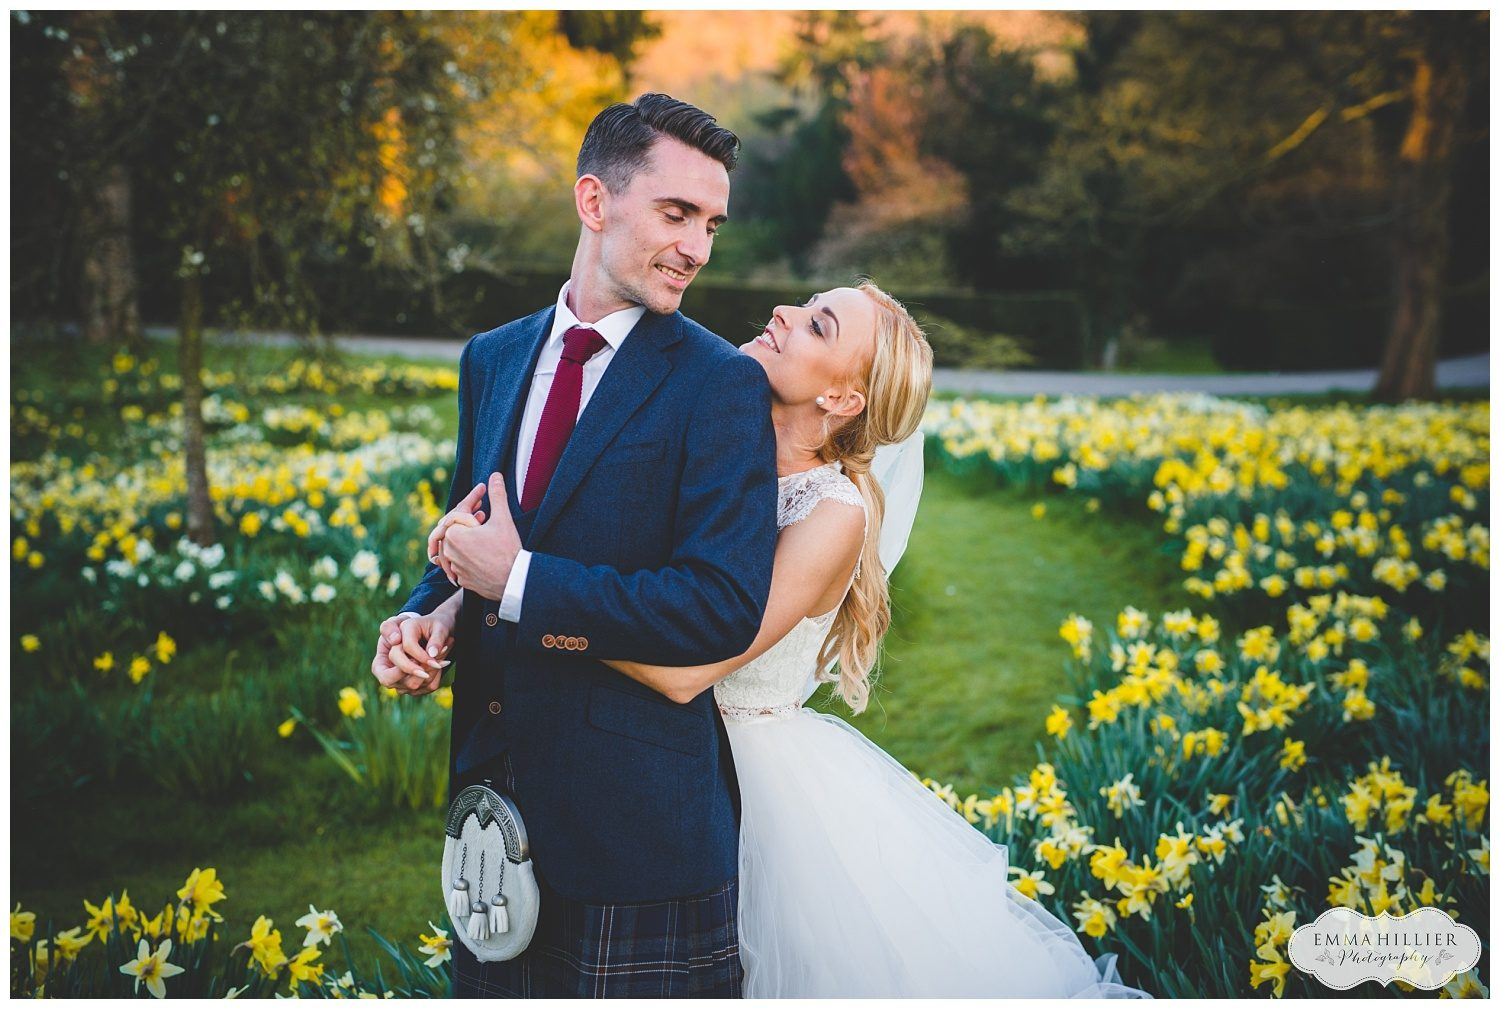 Bride and groom in a field of daffodils at Askham Hall